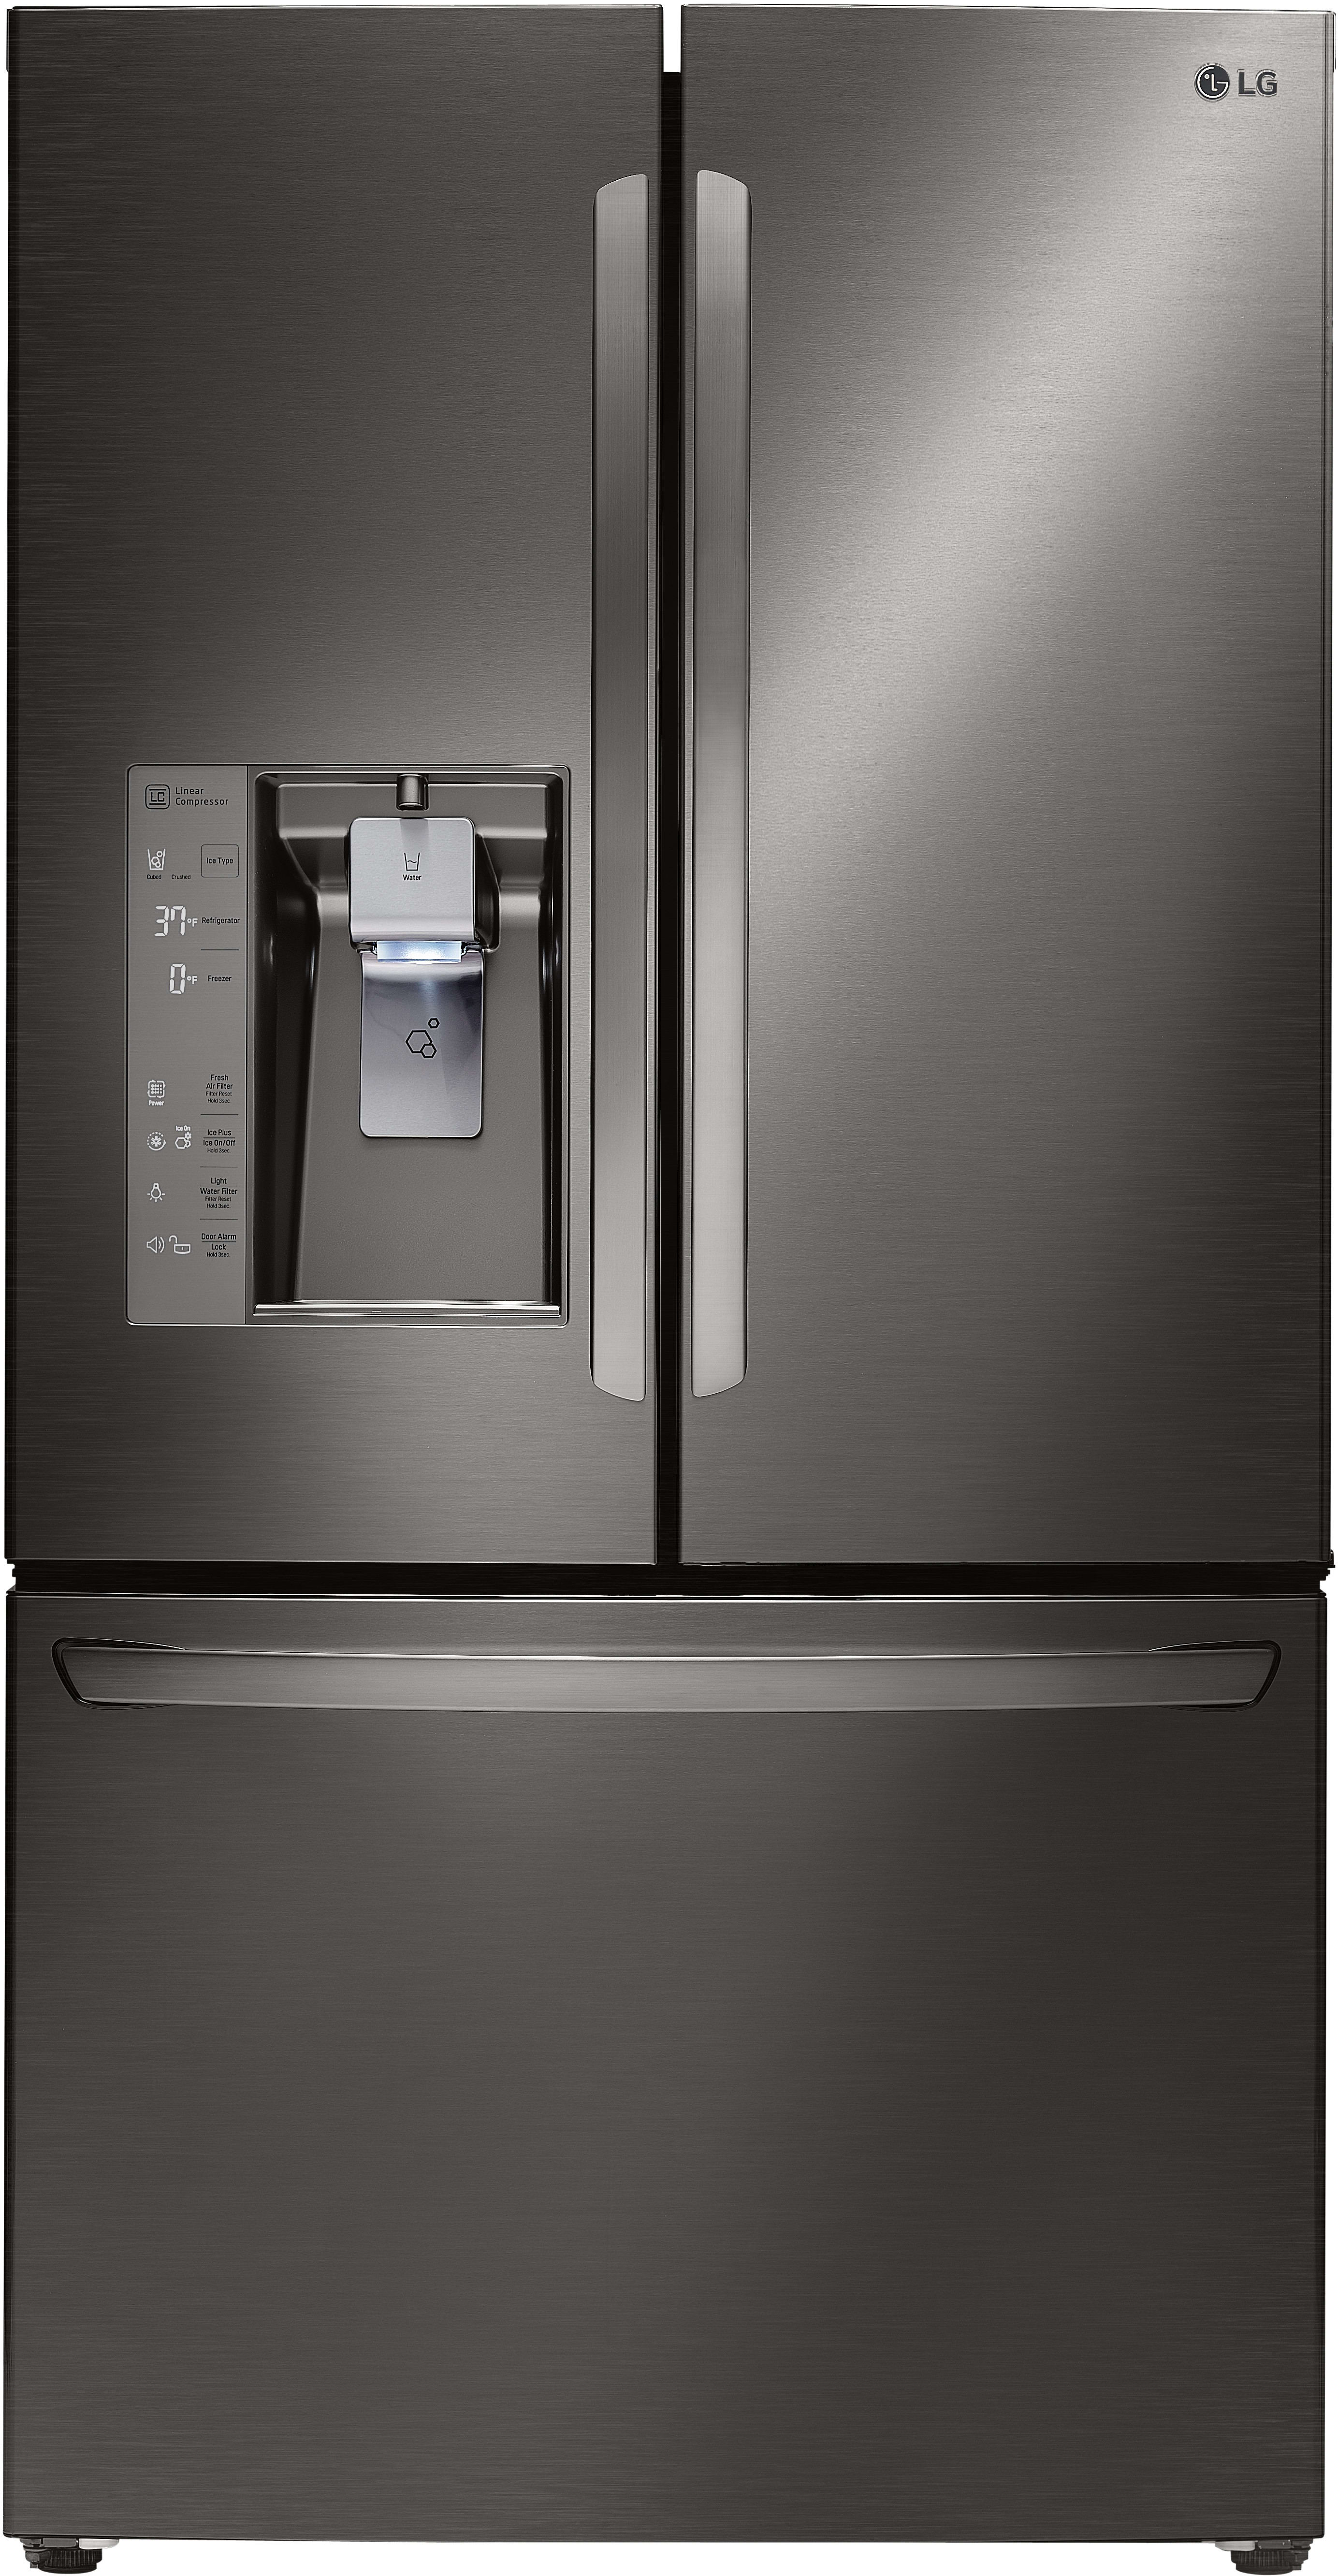 LG LFXC24726D 36 Inch Counter Depth French Door Refrigerator With Slim  SpacePlus® Ice System, Smart Cooling® Plus, Smart Pull® Handle, Tall Ice U0026  Water ...